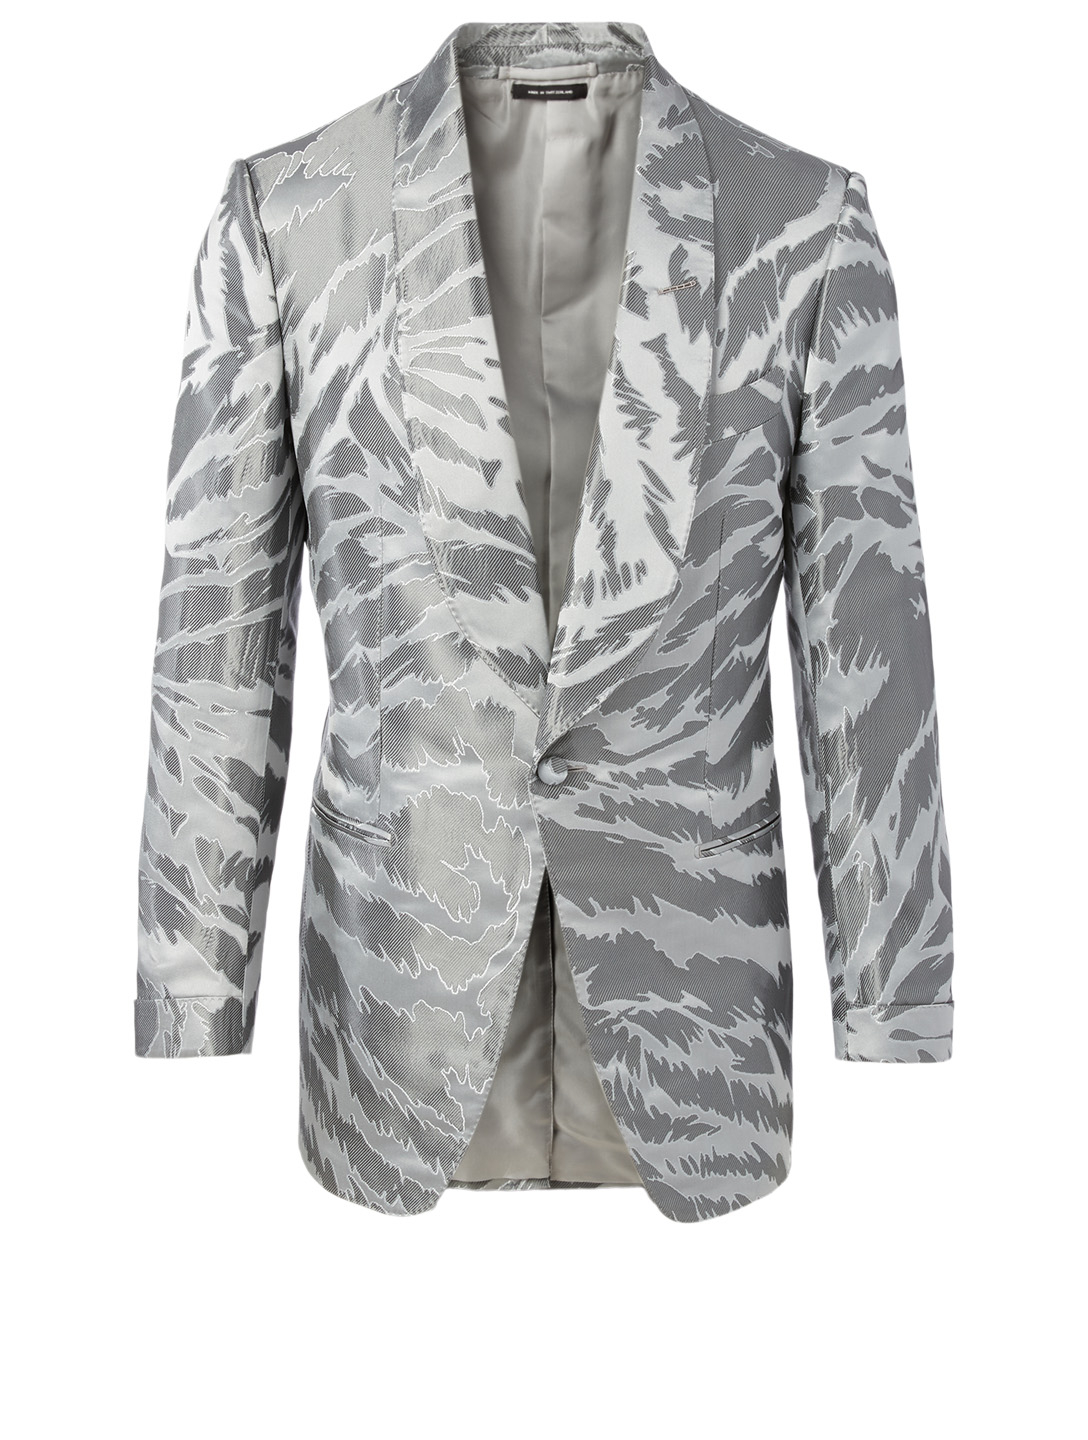 TOM FORD Atticus Cocktail Jacket Men's Grey